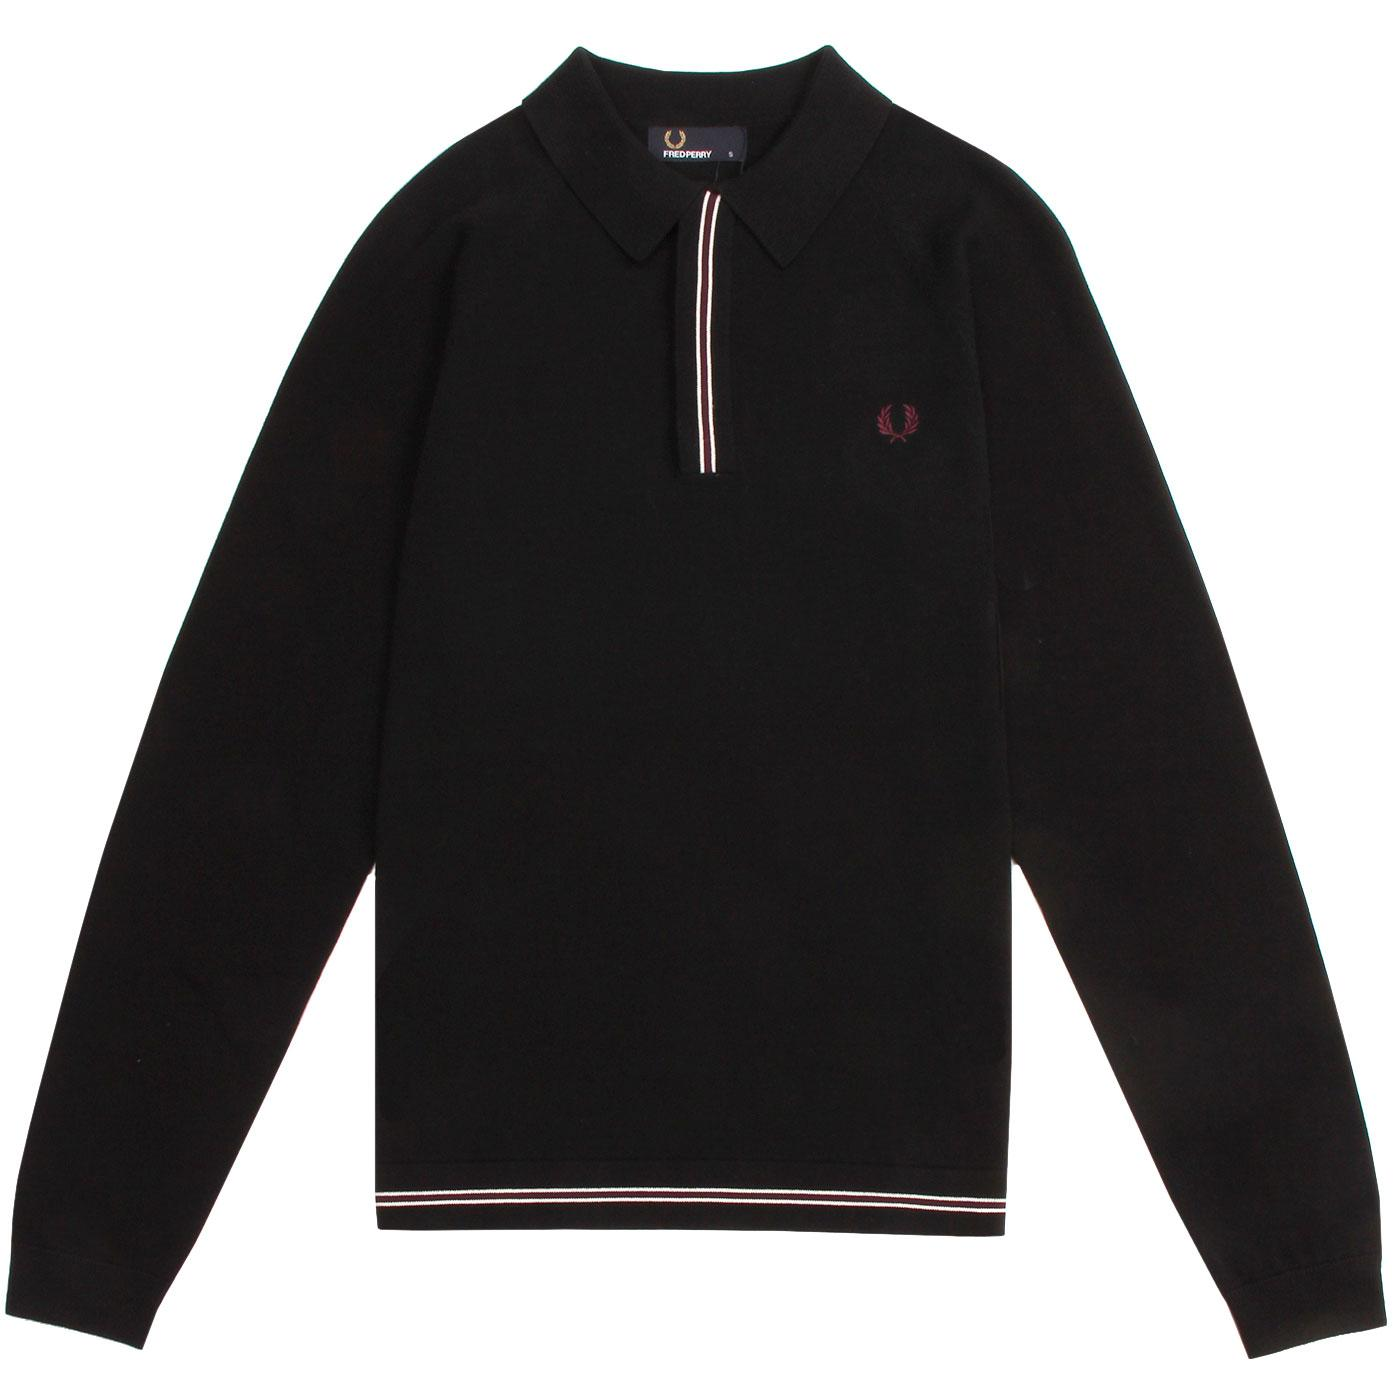 FRED PERRY Men's Contrast Tipped Knitted Polo Top